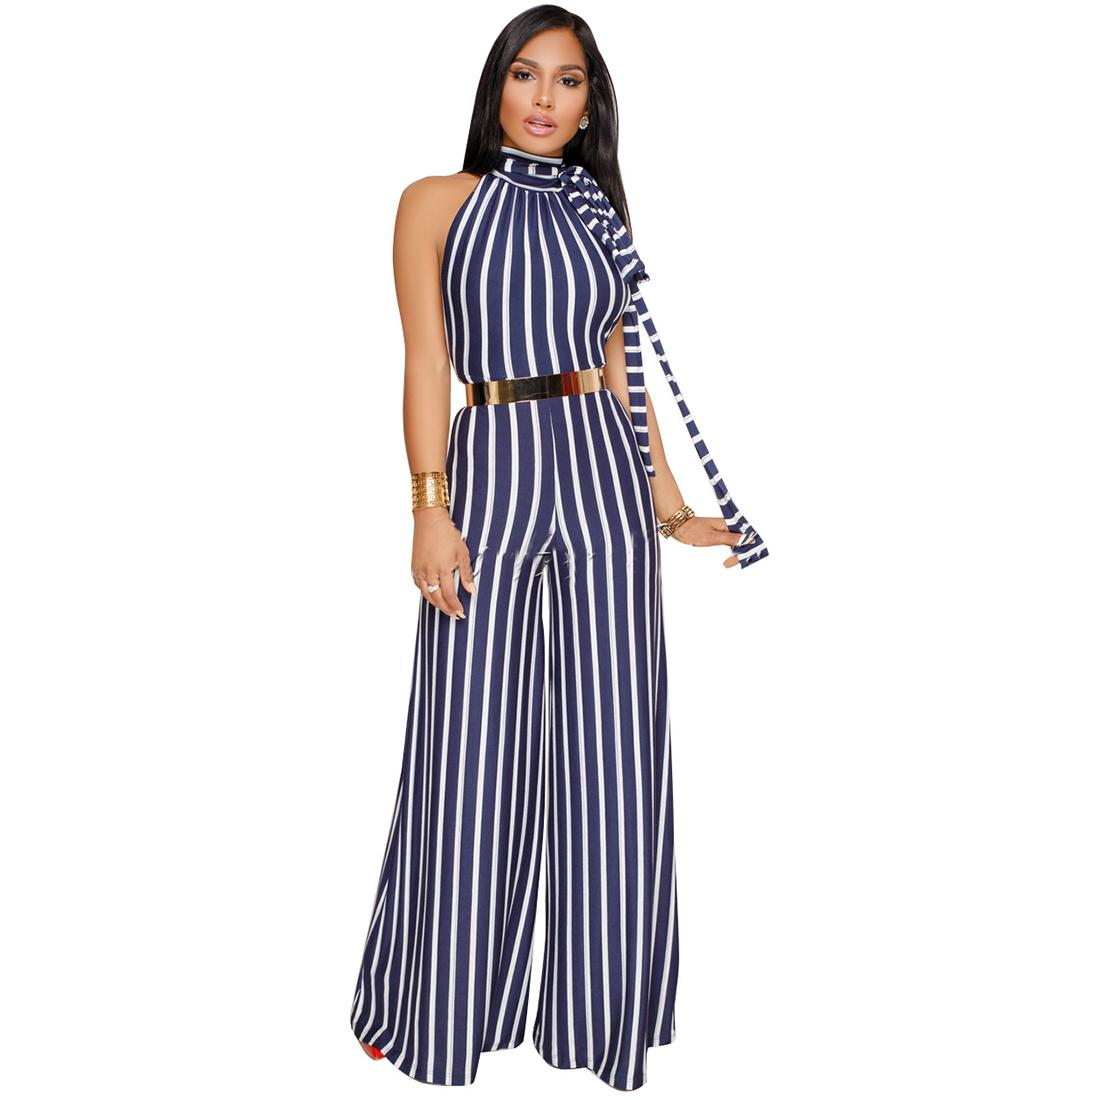 d52e7288bcb 2019 Halter Striped Jumpsuit Romper Fashion Women Sexy Backless Sleeveless  Playsuit Elegant Wide Leg Beach Jumpsuit Loose Overalls From Wangzi001